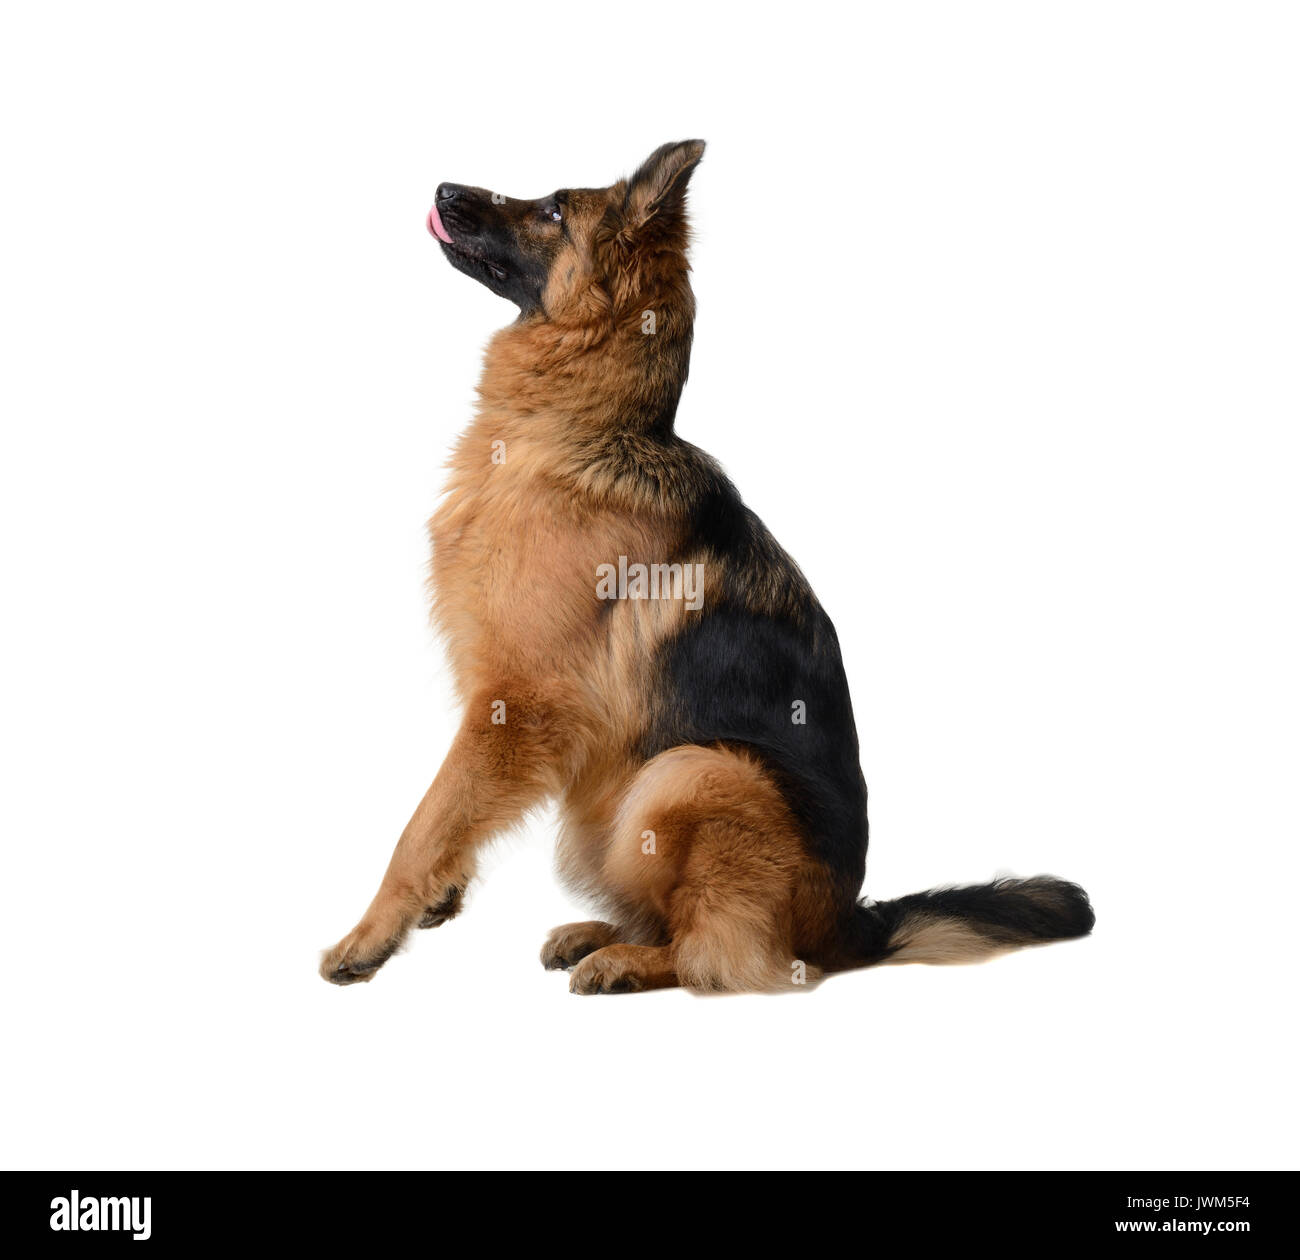 Young Fluffy German Shepherd Dog in exhibition standing against white background. Purebred dog in the rack. - Stock Image